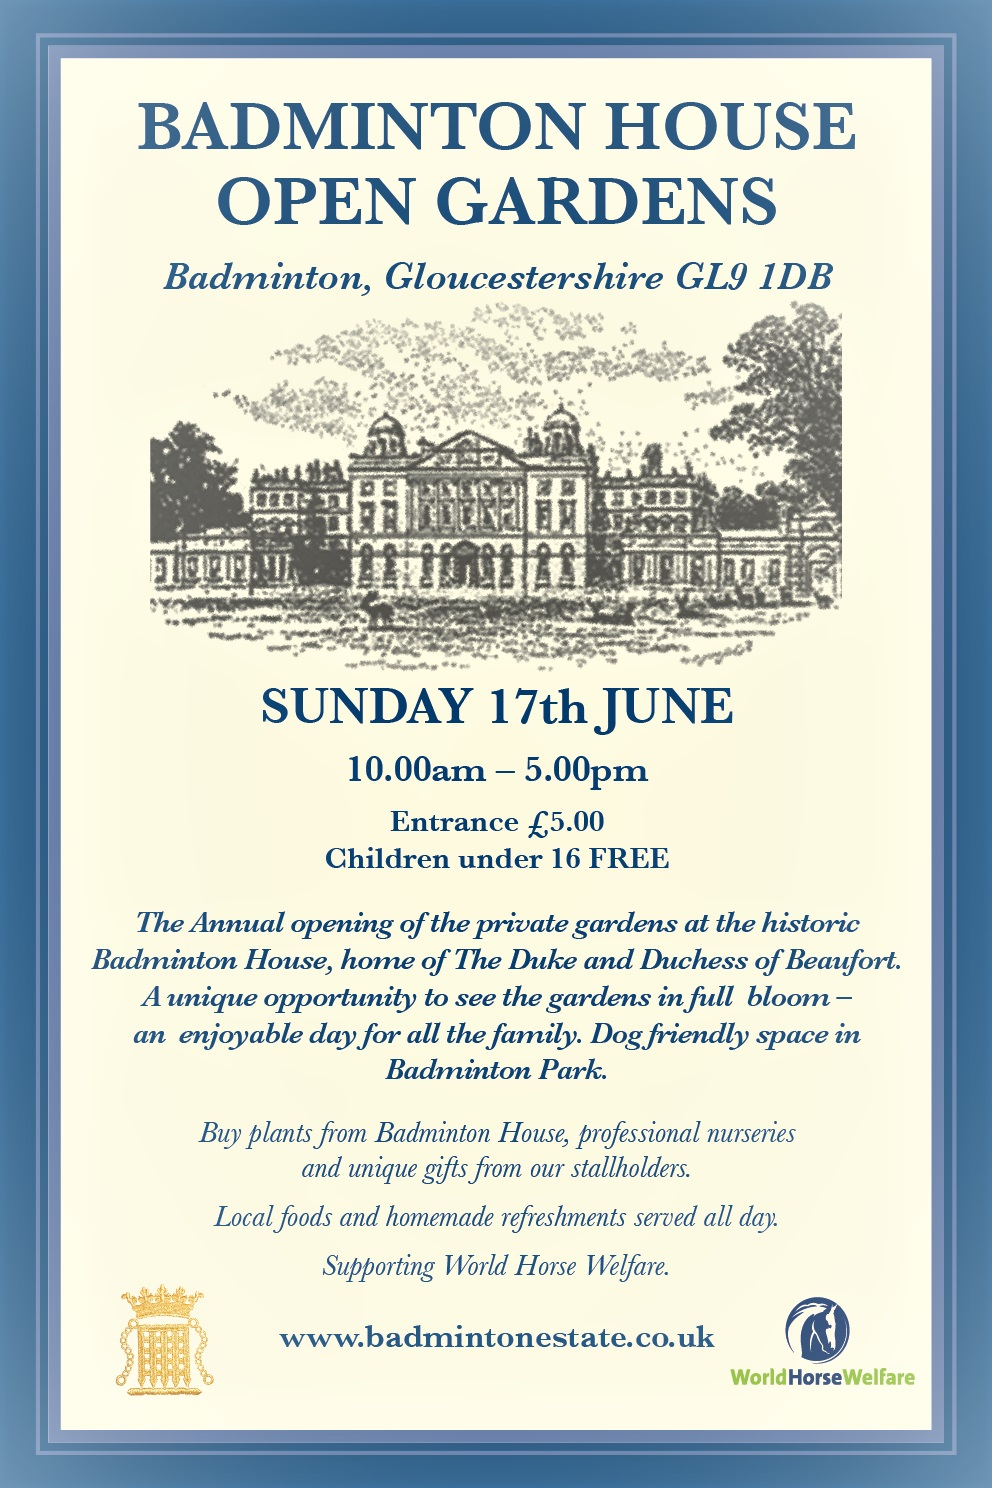 Badminton House Open Gardens 2018